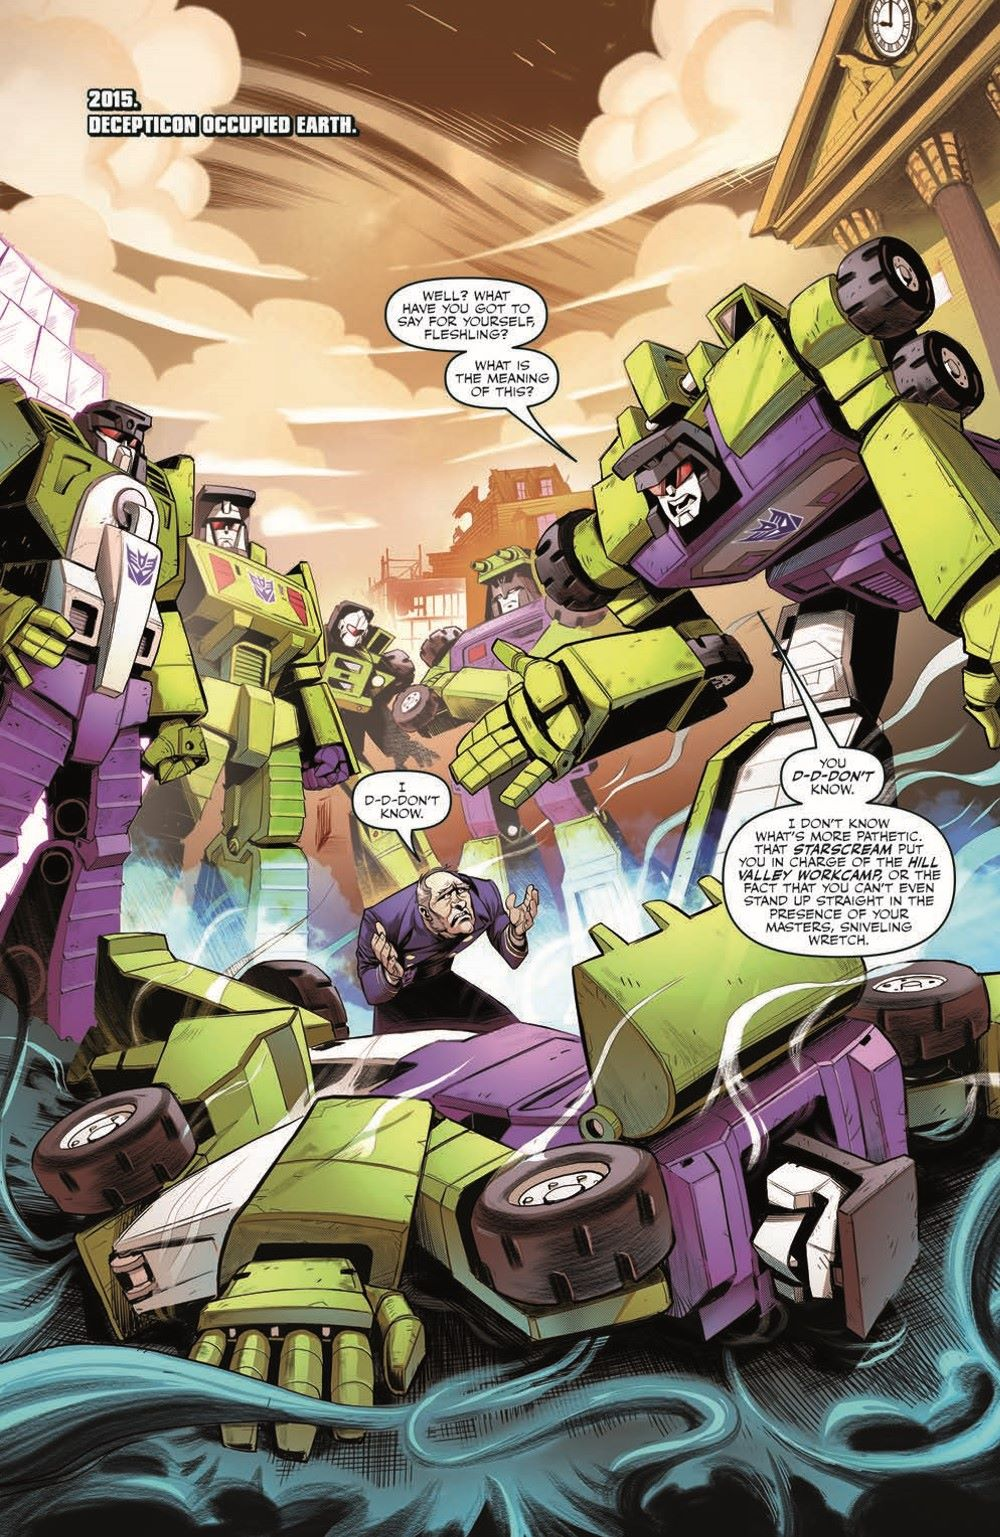 TF_BTTF03-pr-3 ComicList Previews: TRANSFORMERS BACK TO THE FUTURE #3 (OF 4)